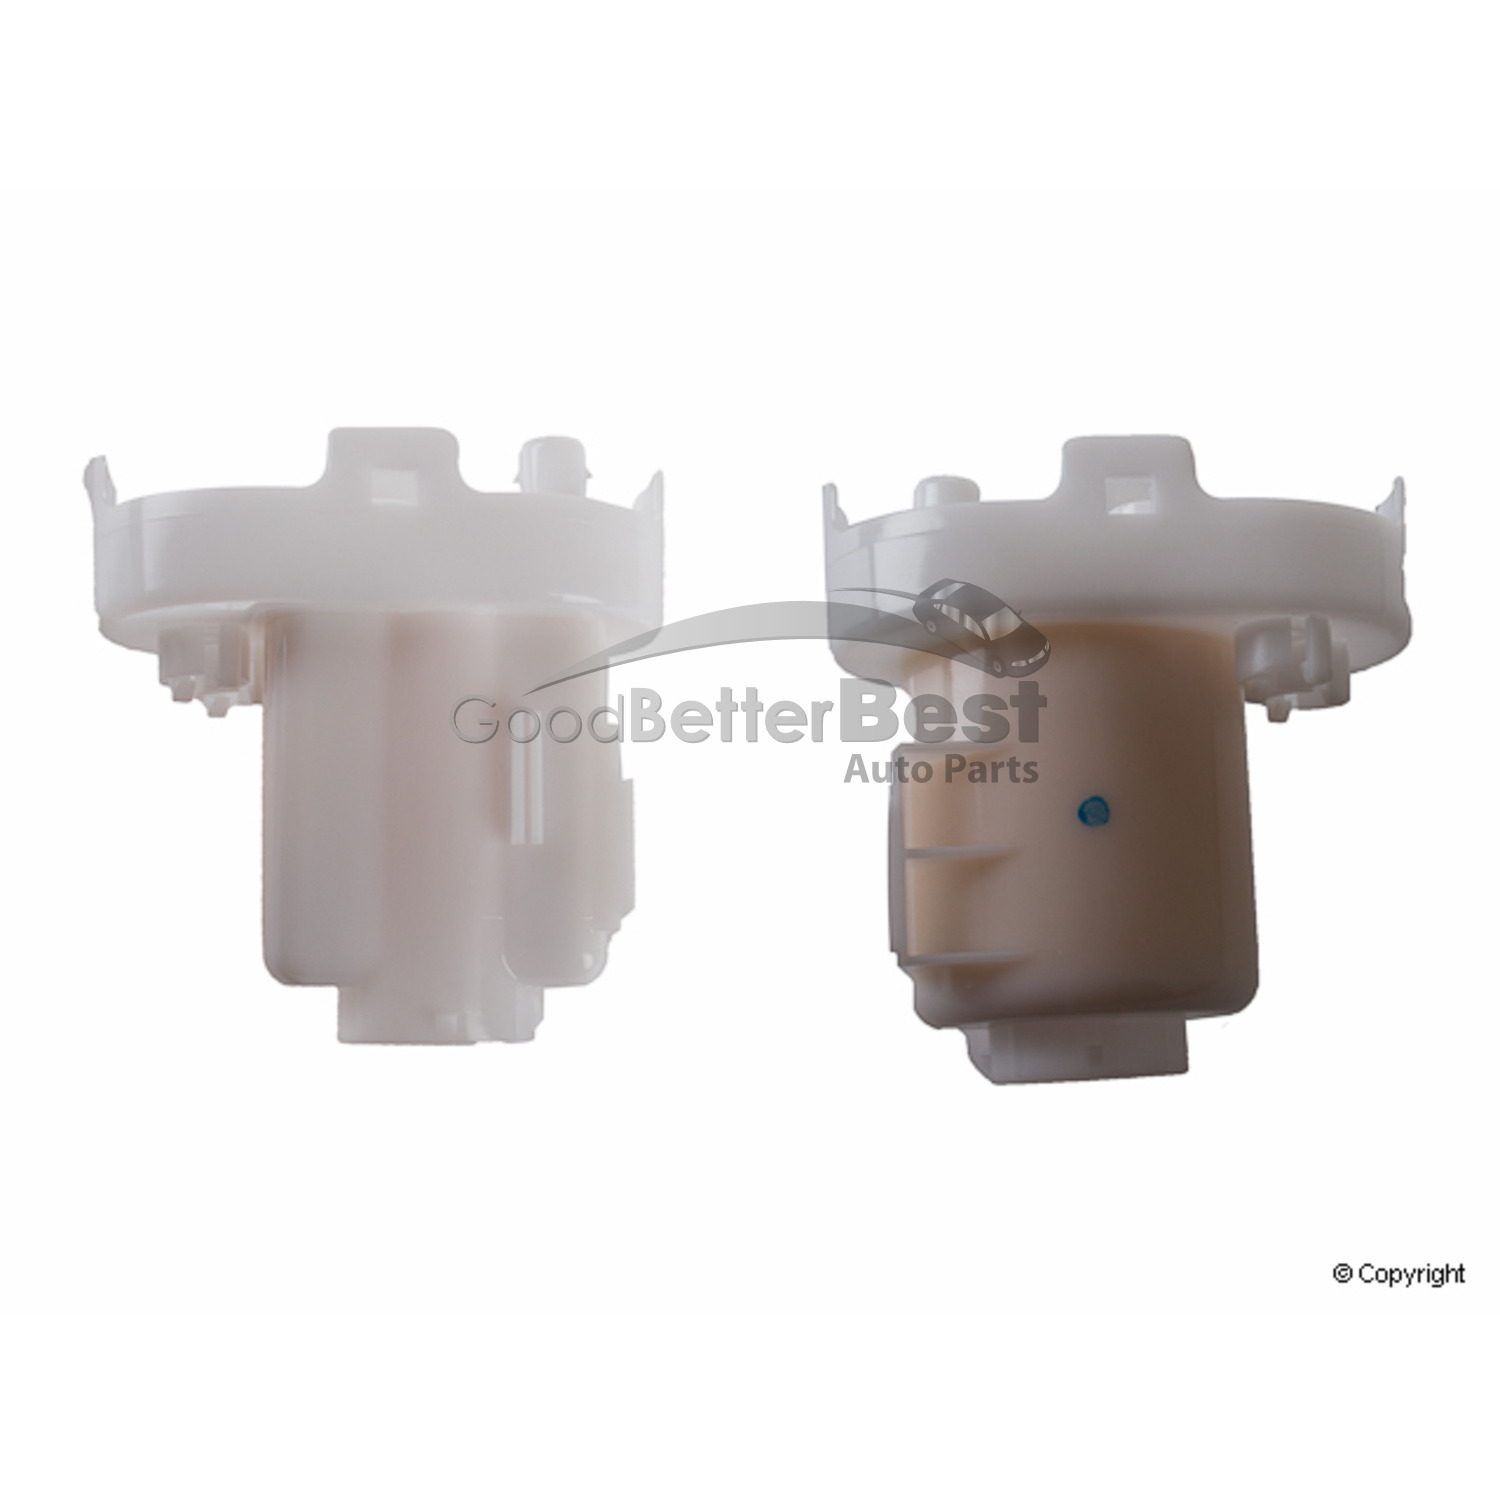 New Korean Fuel Filter CFB001 319112E000 for Hyundai Kia Tucson Sportage